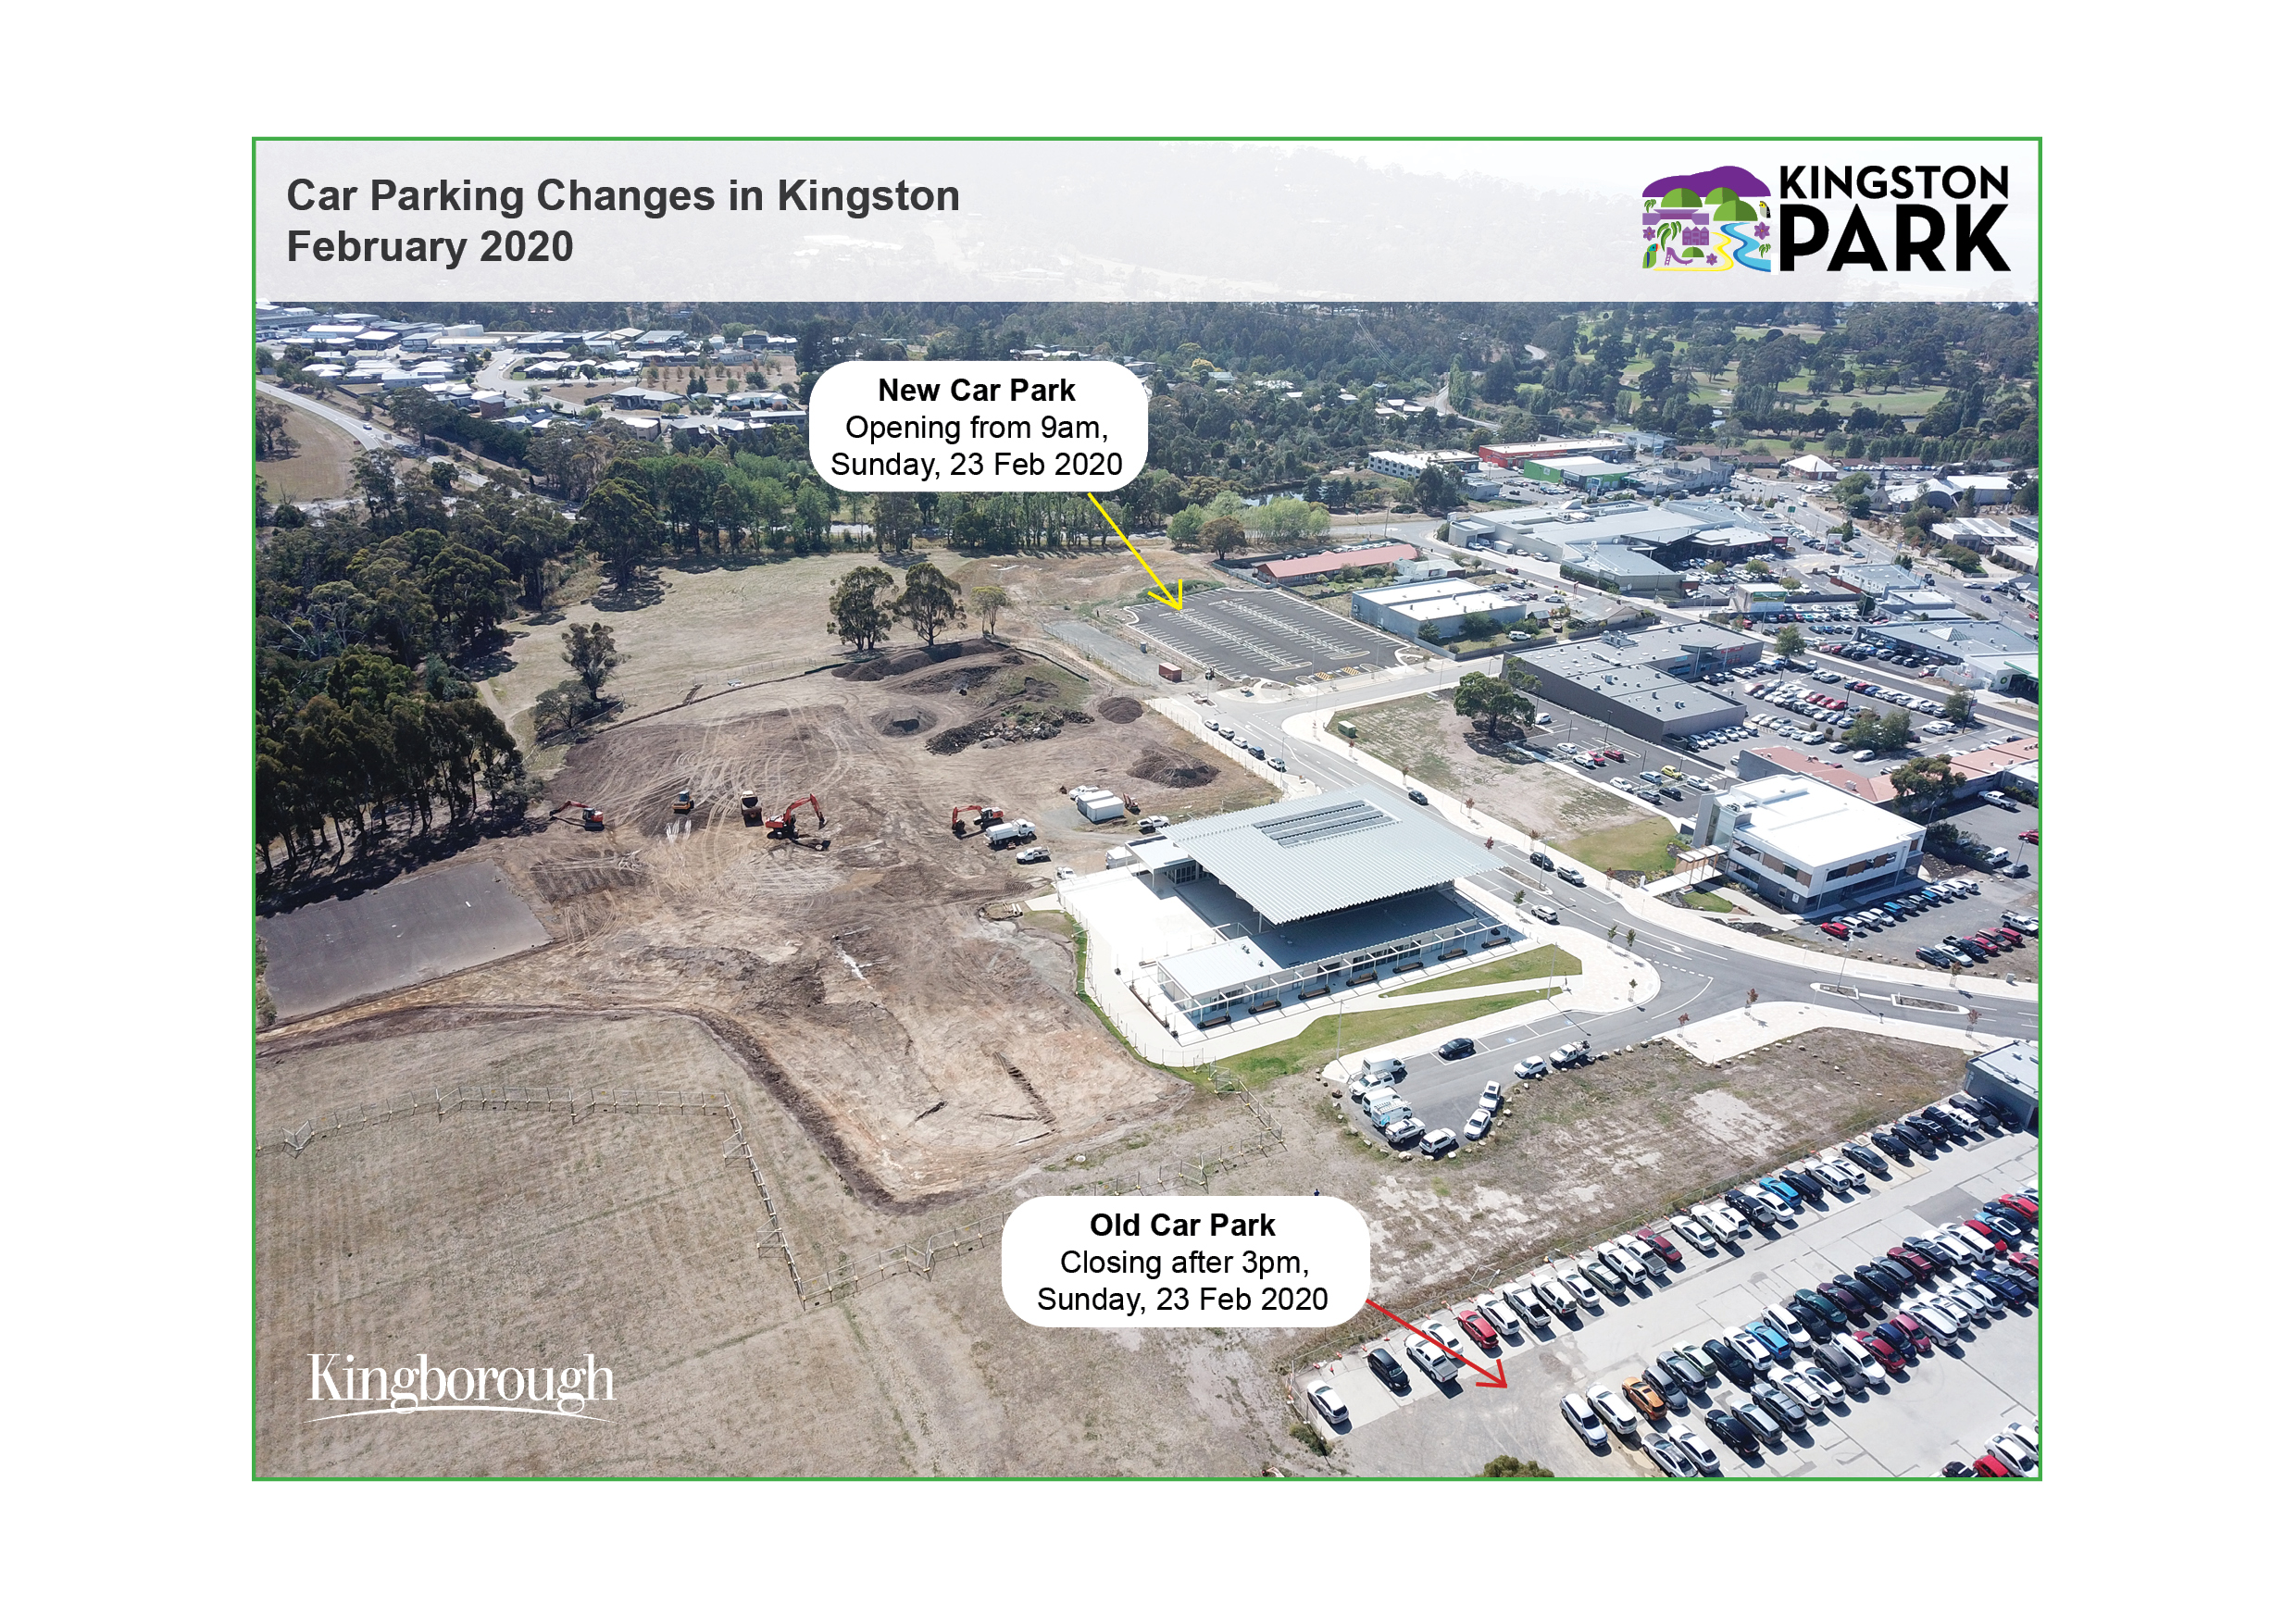 Aerial photo of Kingston Park showing new car park opening on 23 February and old car park closing from 5pm on Sunday 23 February 2020